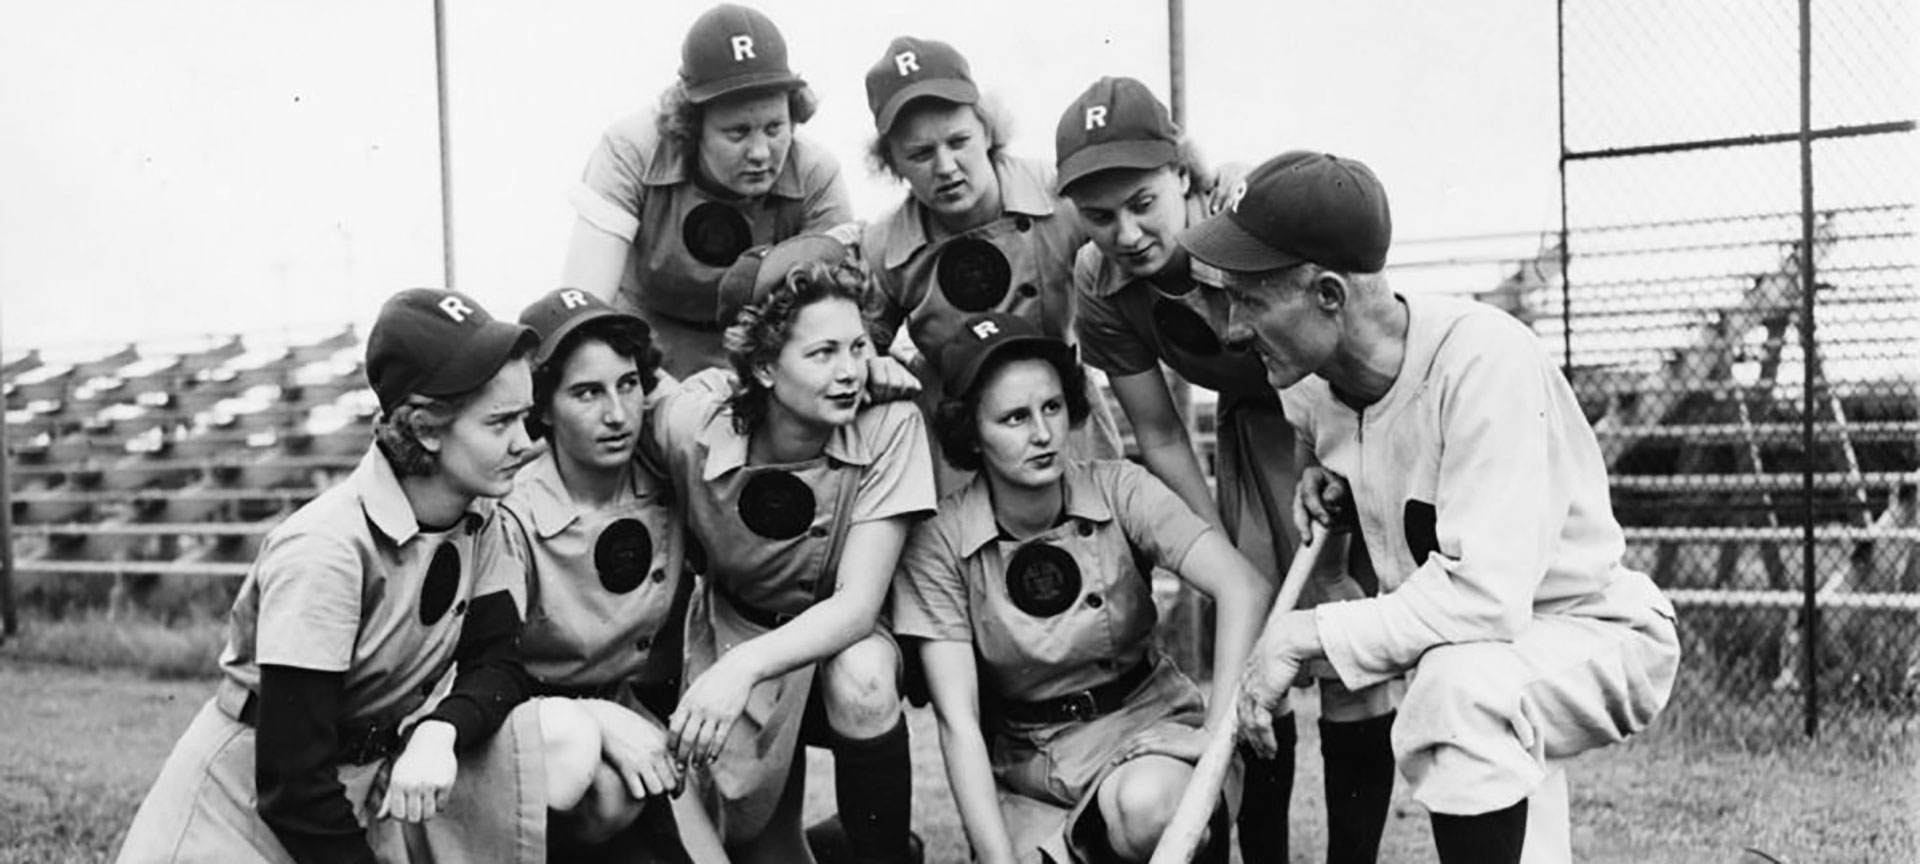 Members of the all-female baseball team the Rockford Peaches gathered on the field